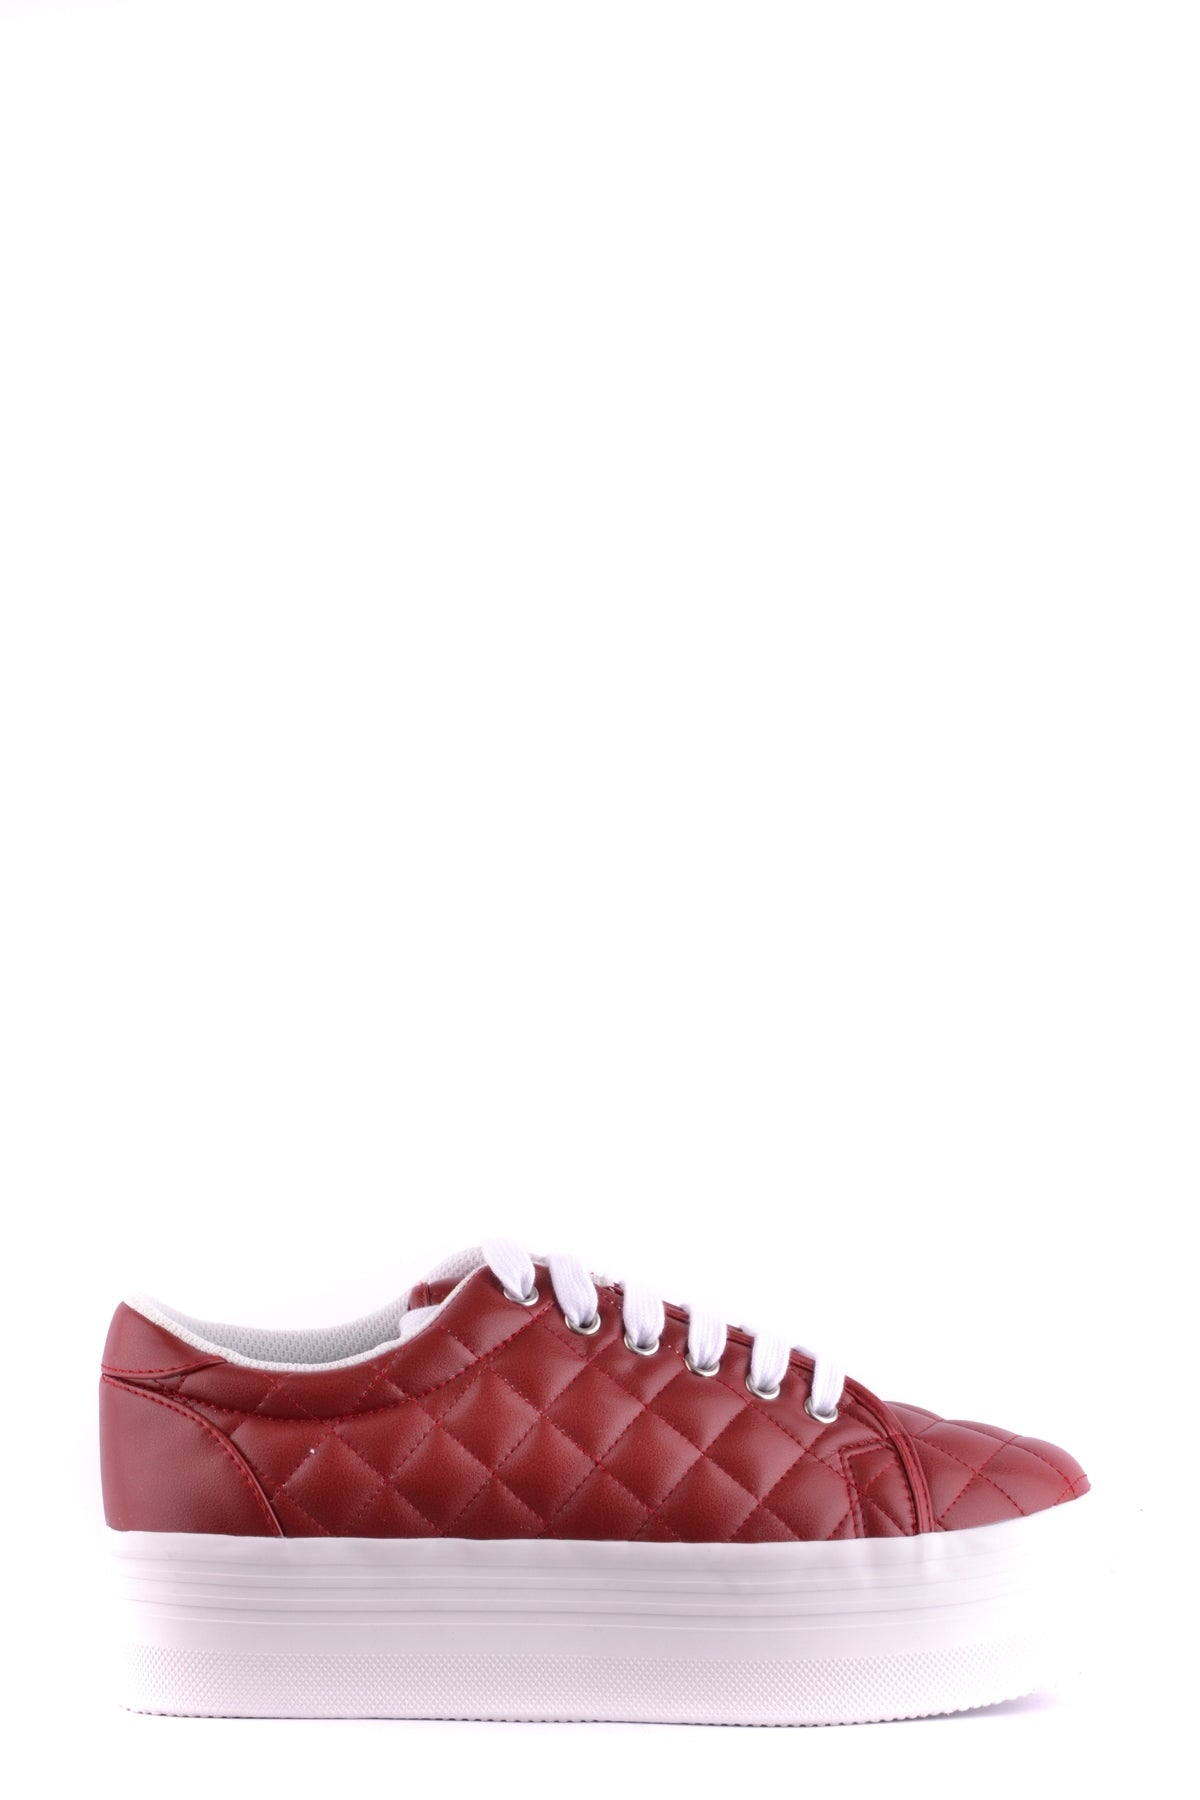 Shoes Jc Play By Jeffrey Campbell-Sneakers - WOMAN-39-Product Details Type Of Accessory: ShoesTerms: New With LabelYear: 2017Main Color: BurgundySeason: Spring / SummerMade In: VietnamSize: EuGender: WomanComposition: Polyamide 100%-Keyomi-Sook